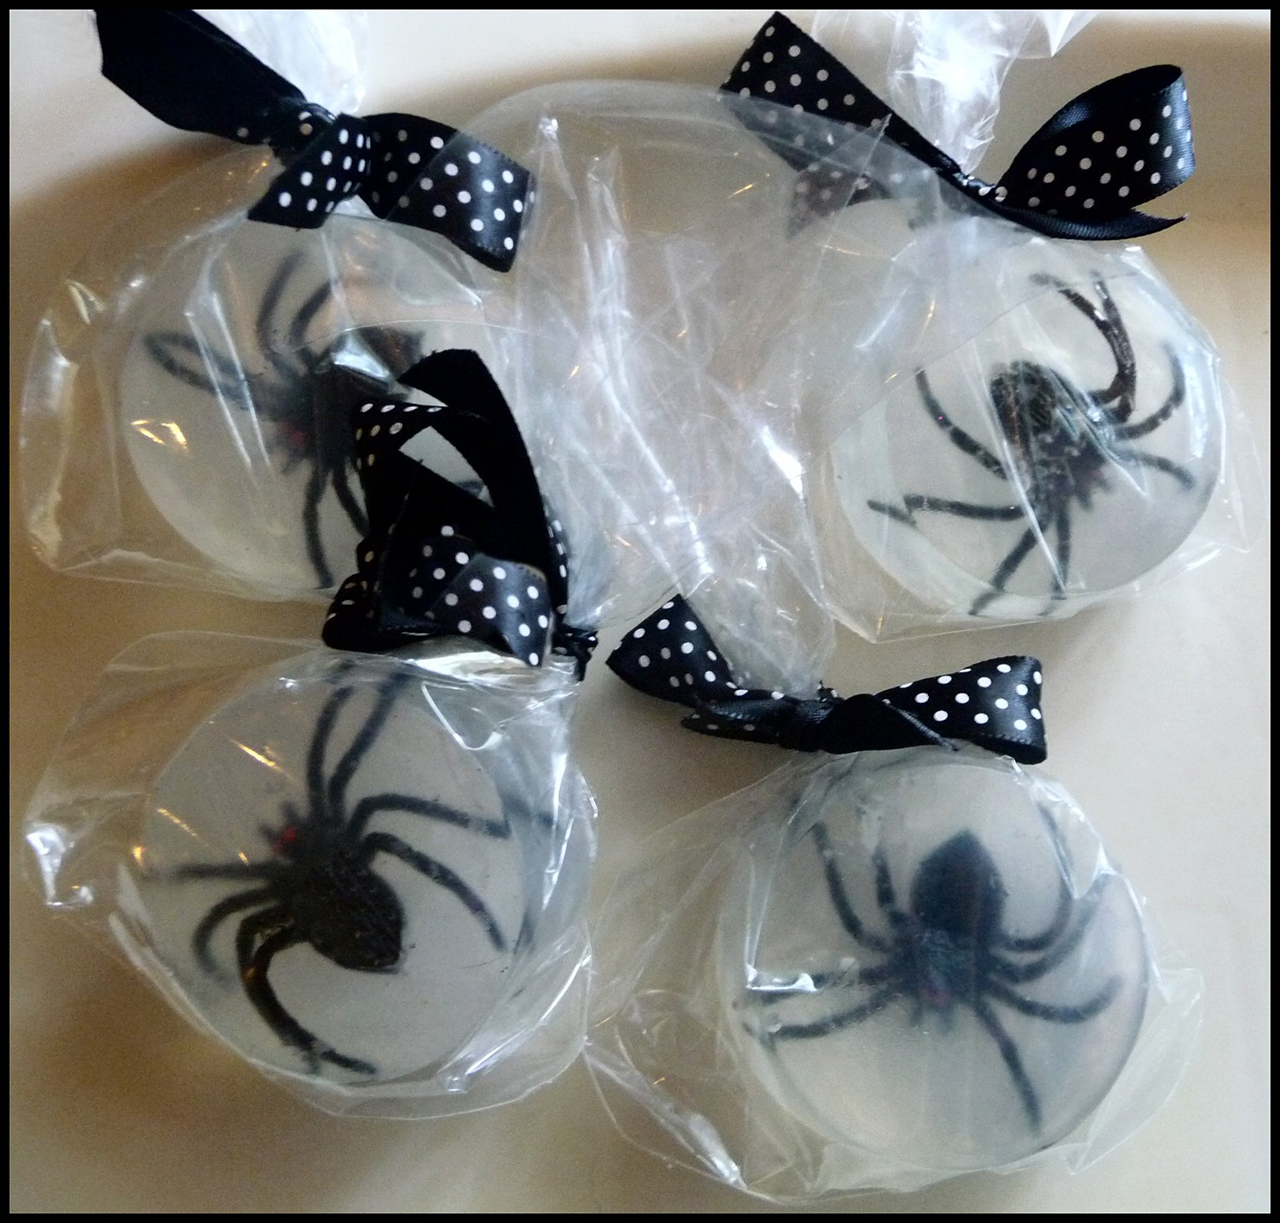 Melt-and-pour Spider Soaps